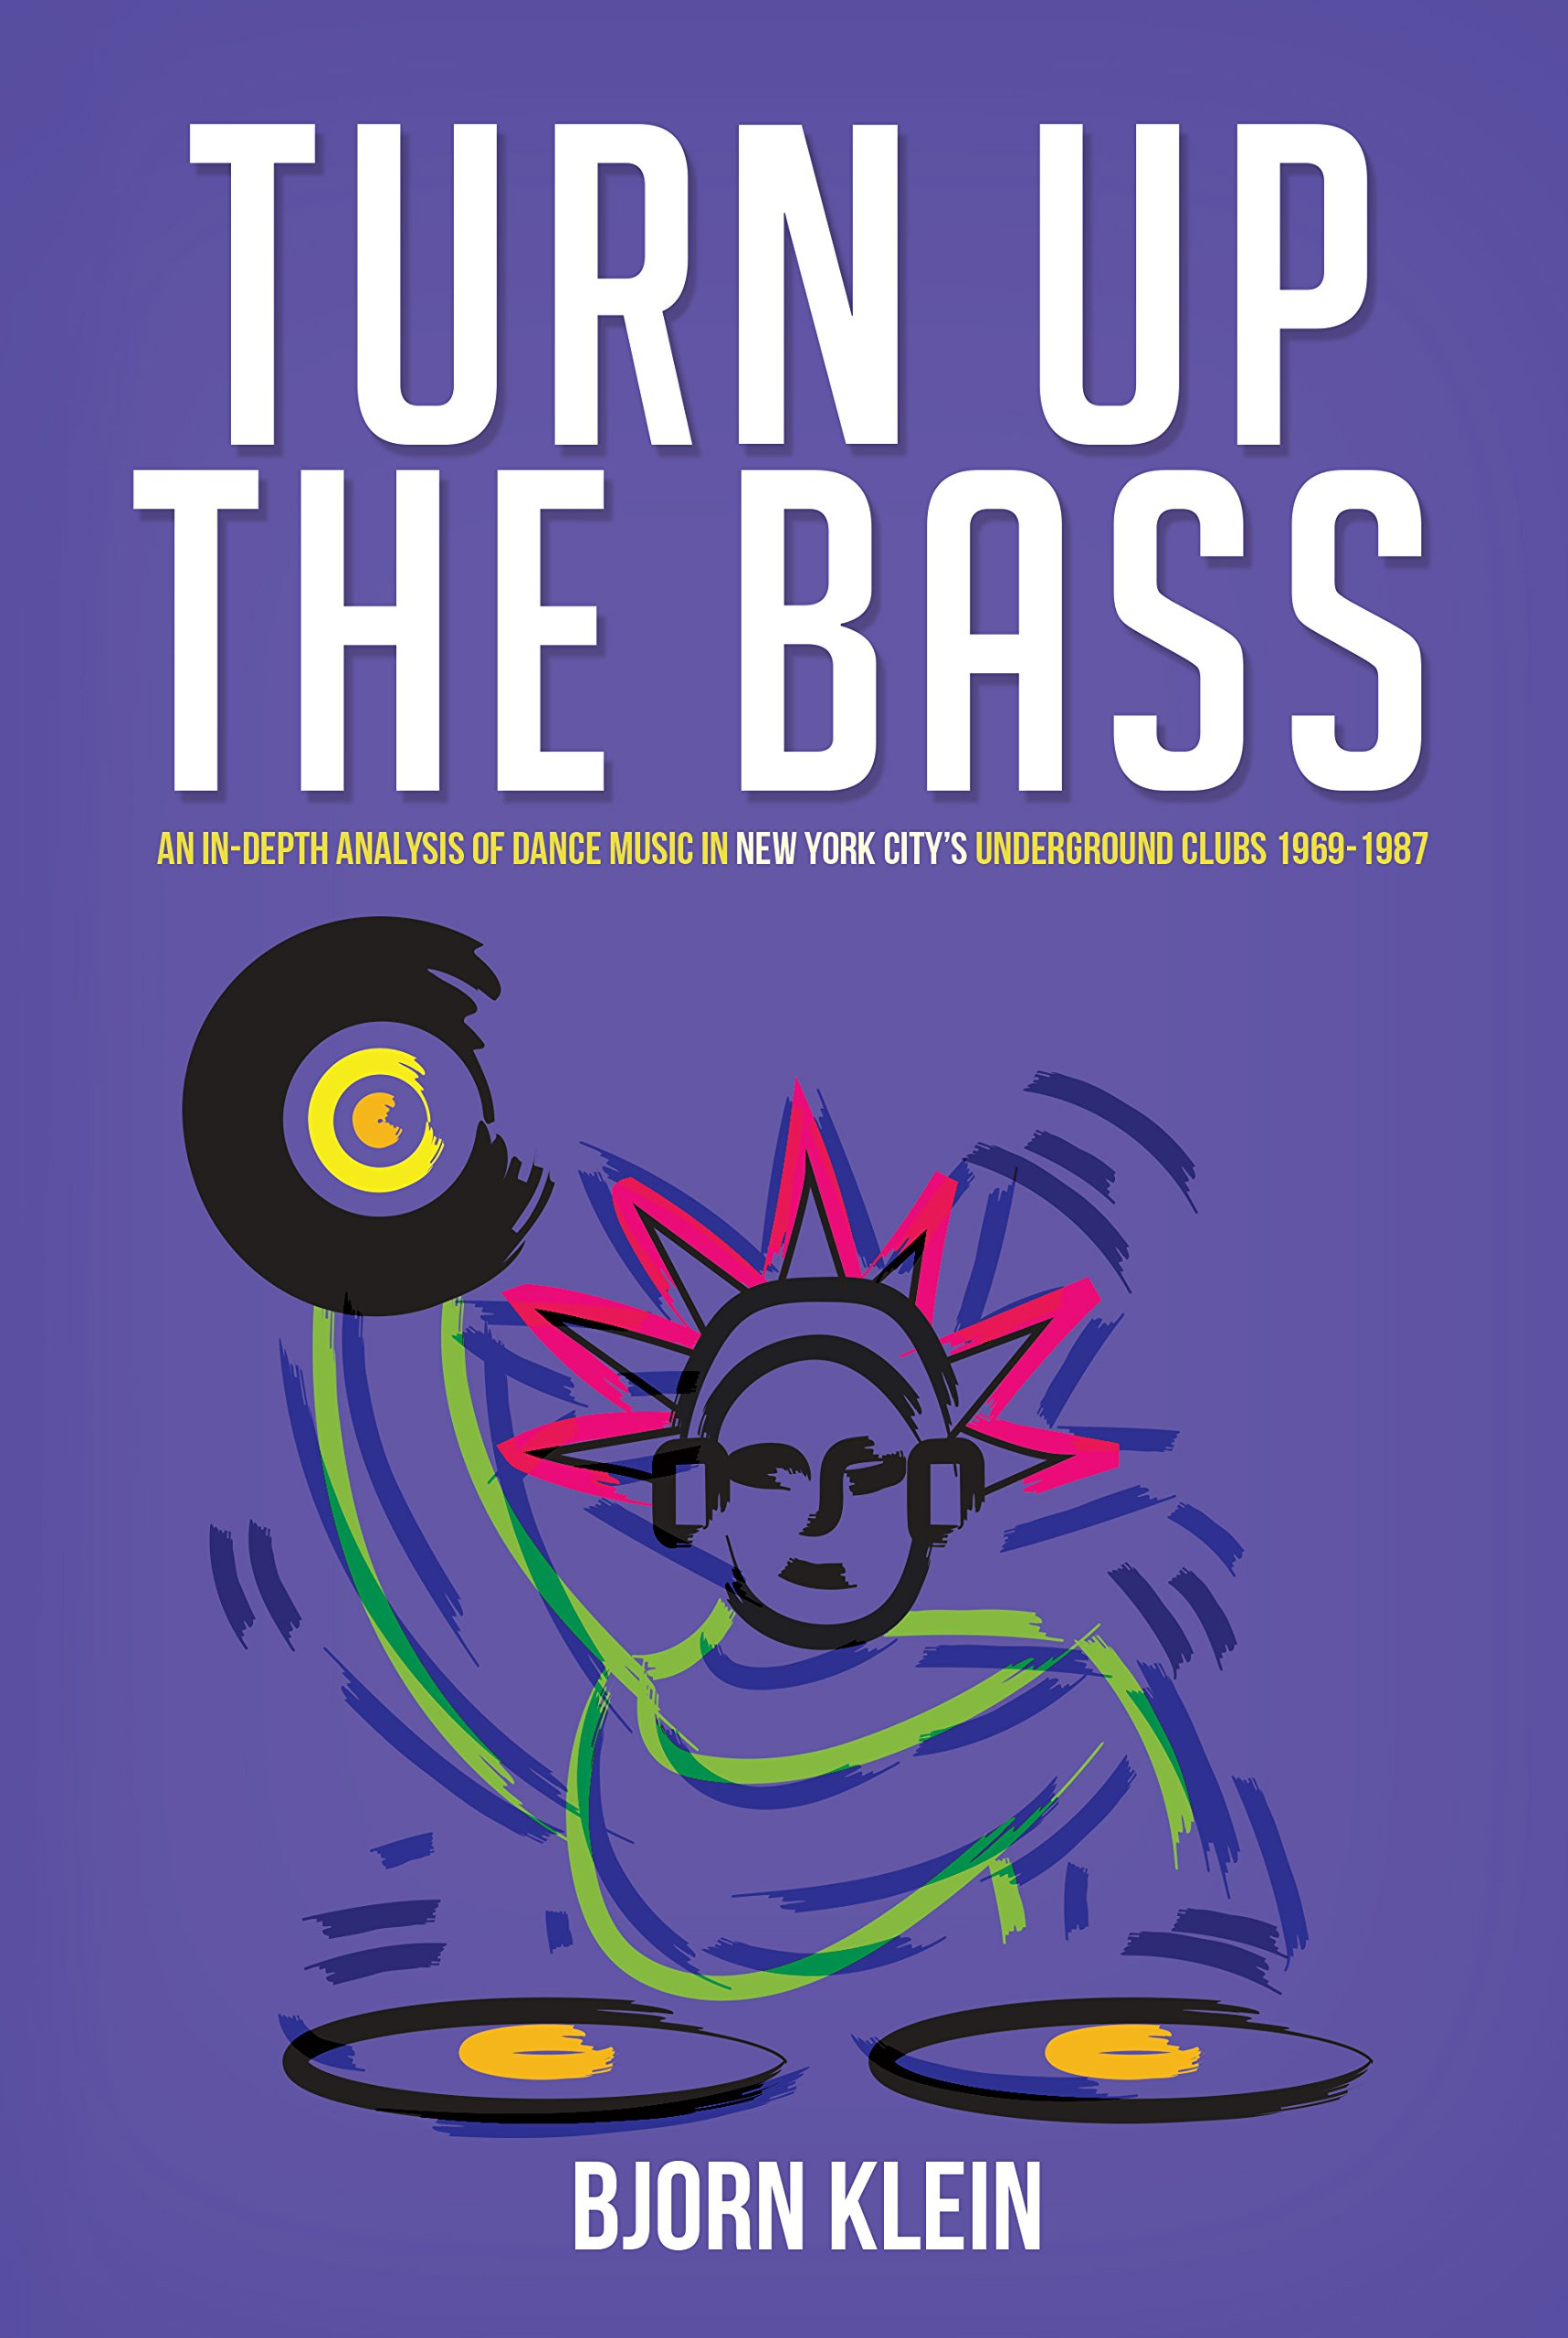 Turn Up The Bass: An In-Depth Analysis of Dance Music in New York City's Underground Clubs 1969-1987